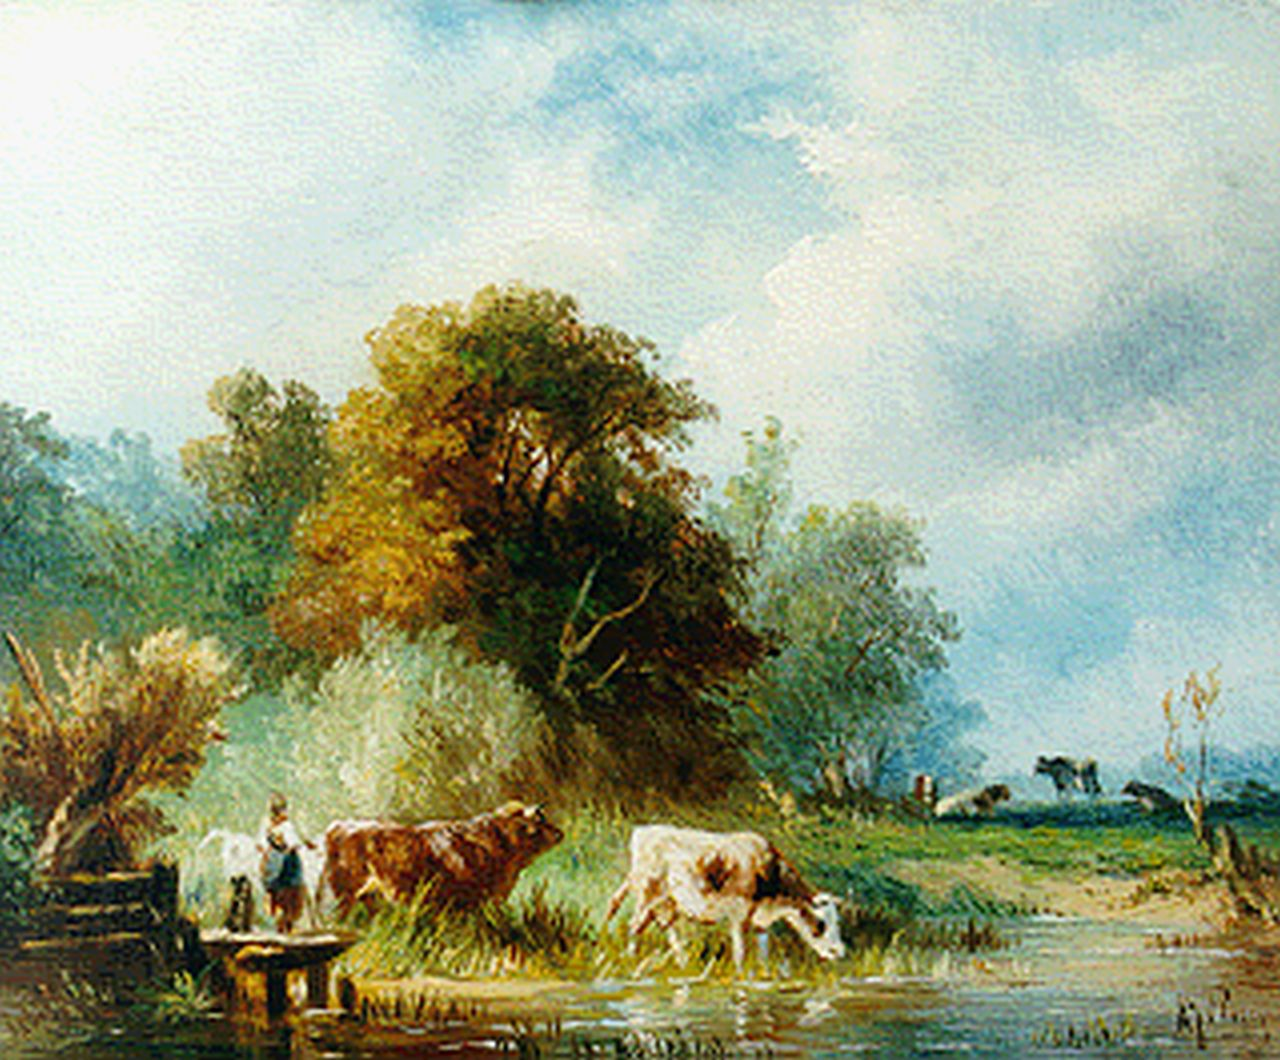 Prooijen A.J. van | Albert Jurardus van Prooijen, A polder landscape with cows watering, oil on panel 13.5 x 16.5 cm, signed l.r.